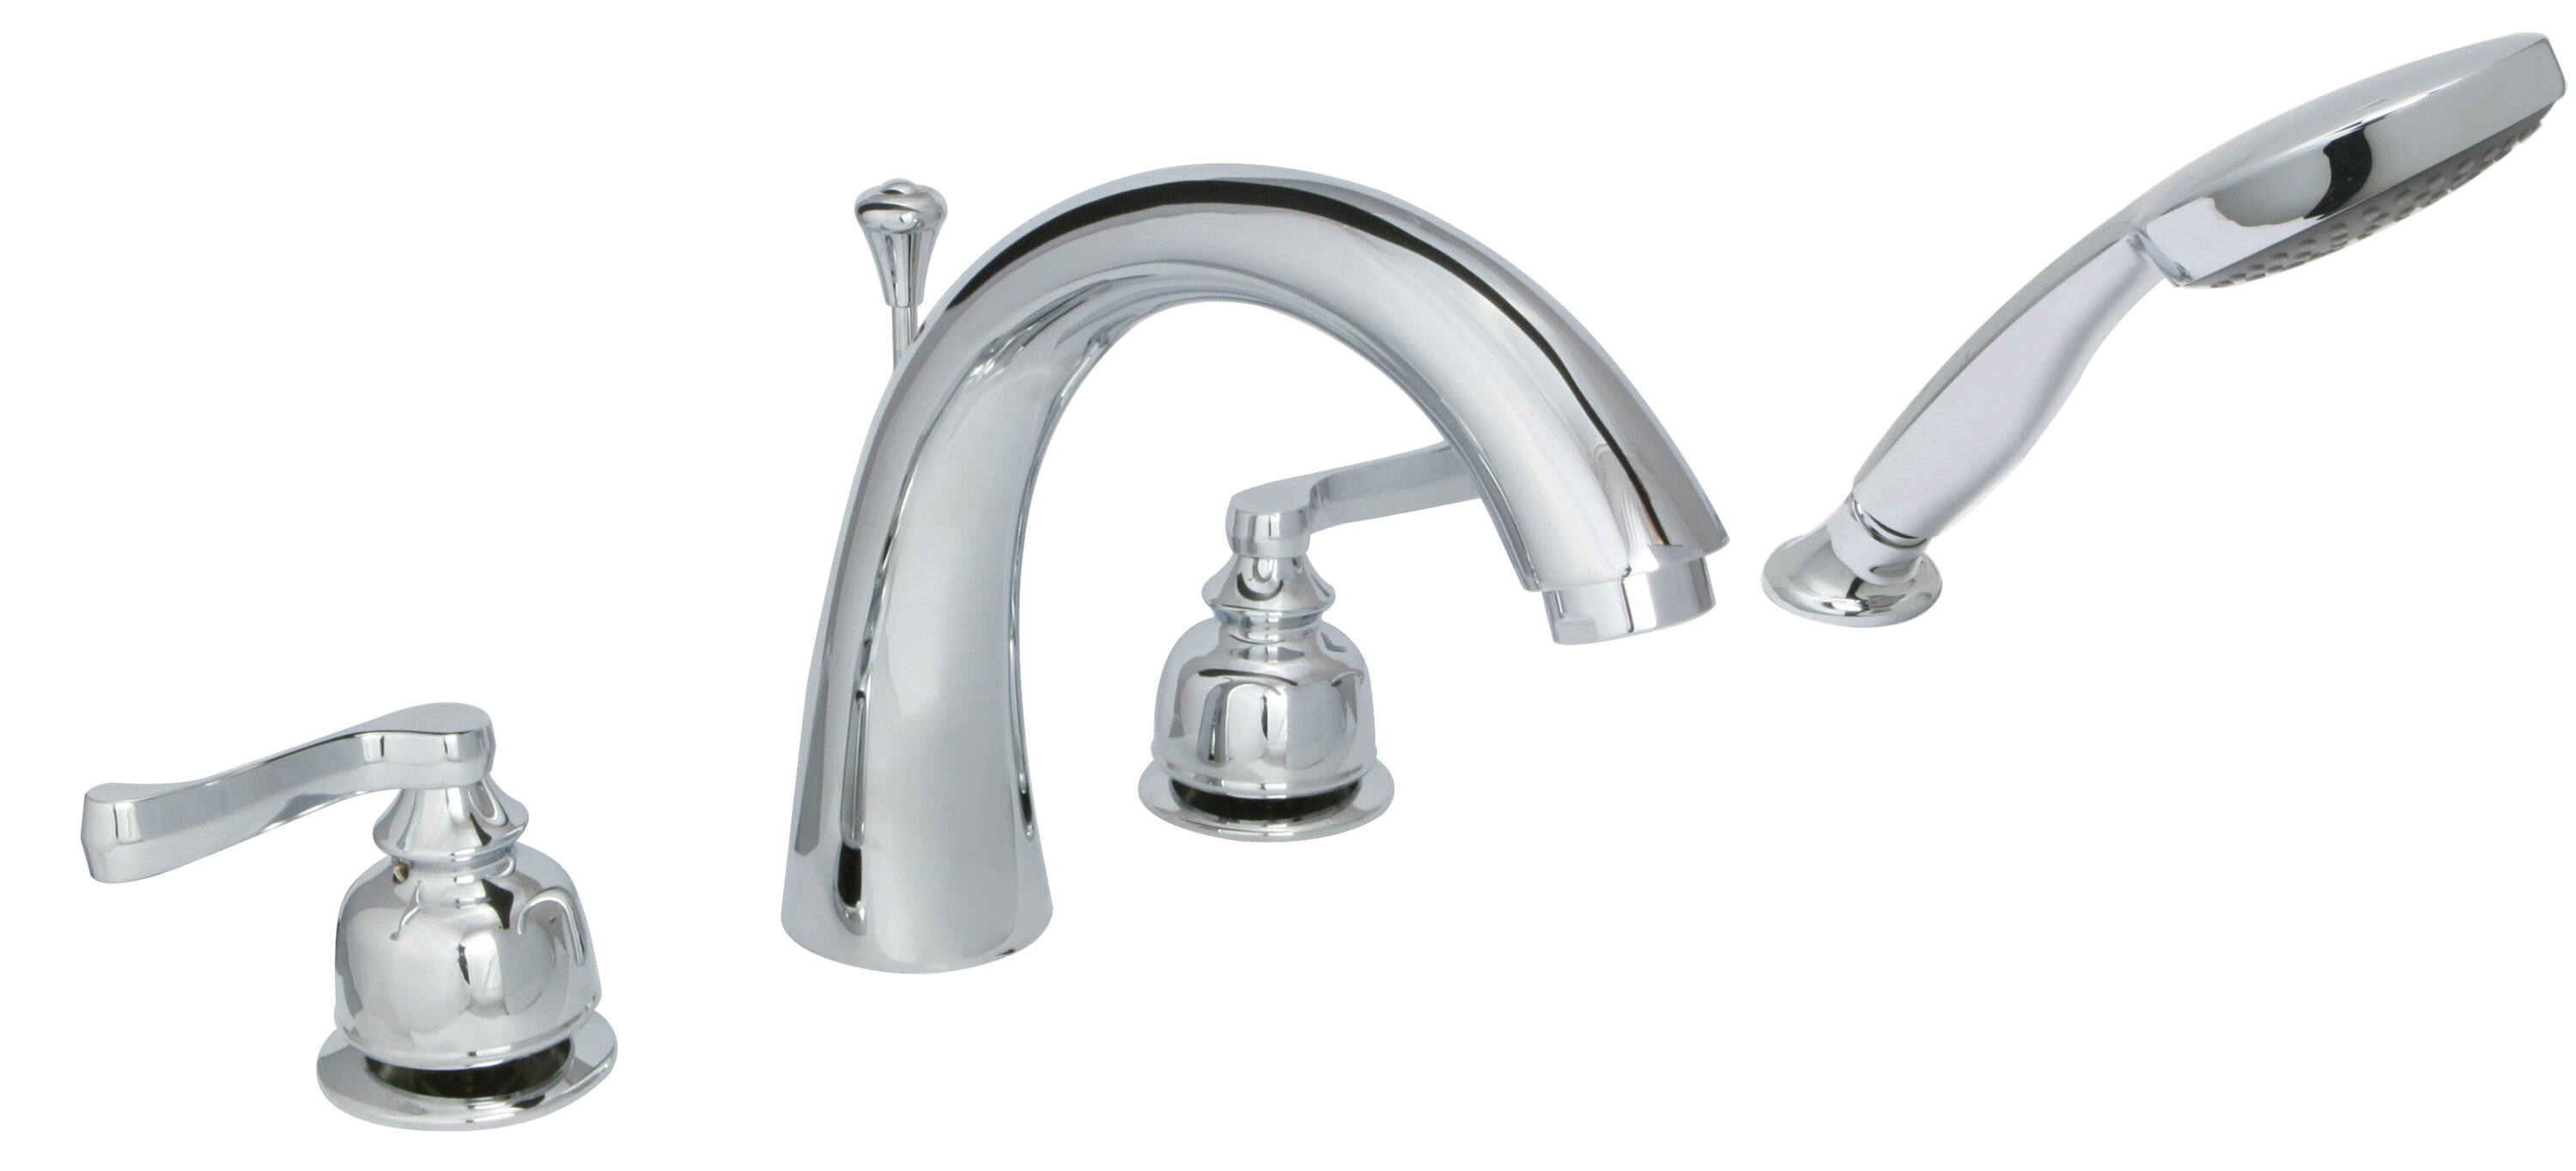 Sienna Double Handle Deck Mounted Roman Tub Faucet With Hand Shower